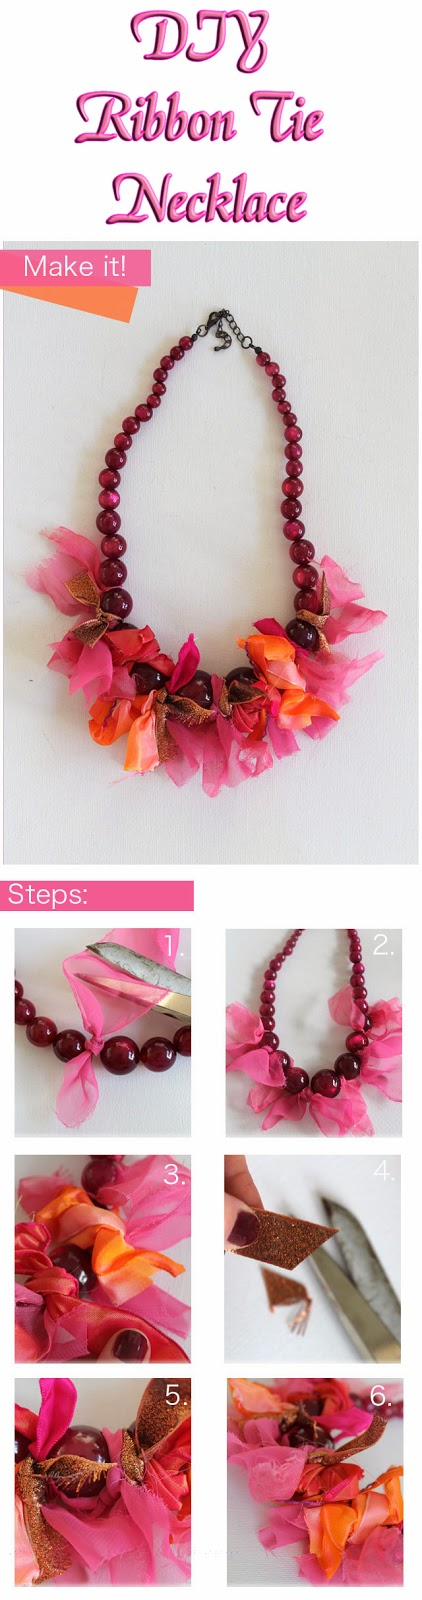 DIY Ribbon Tie Necklace